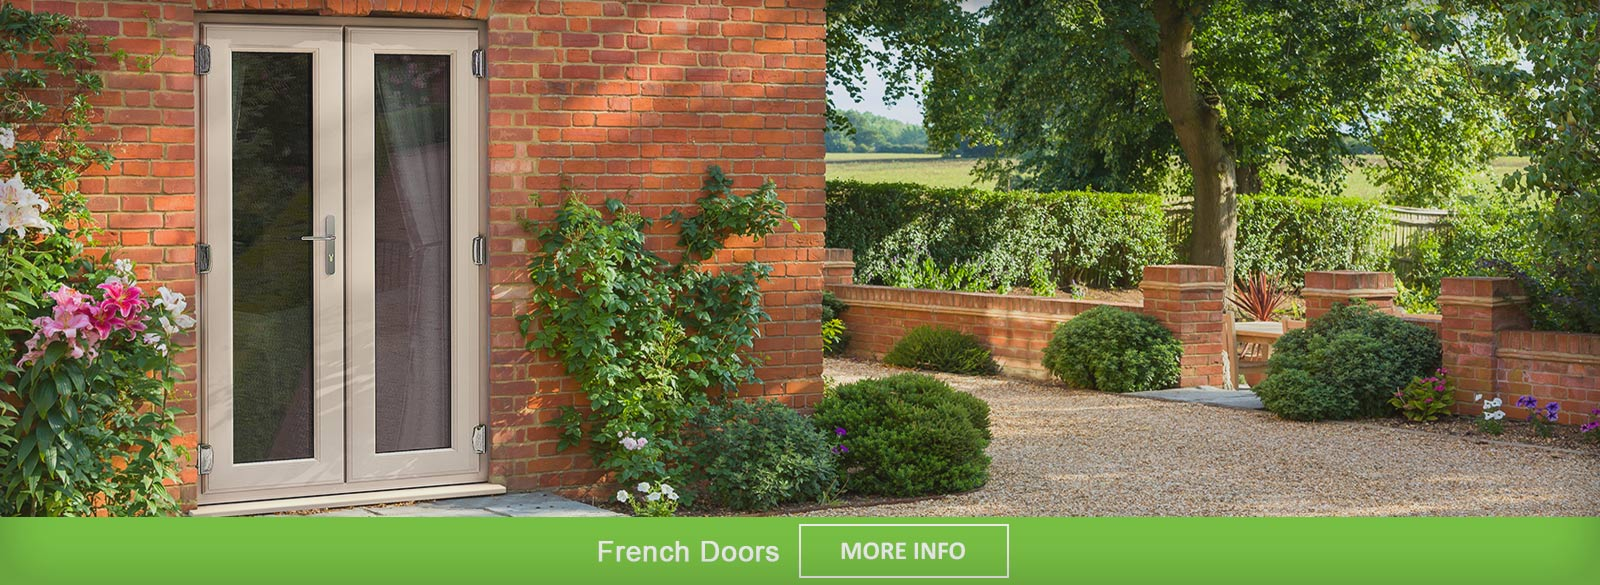 White PVC-u French doors viewed with doors open